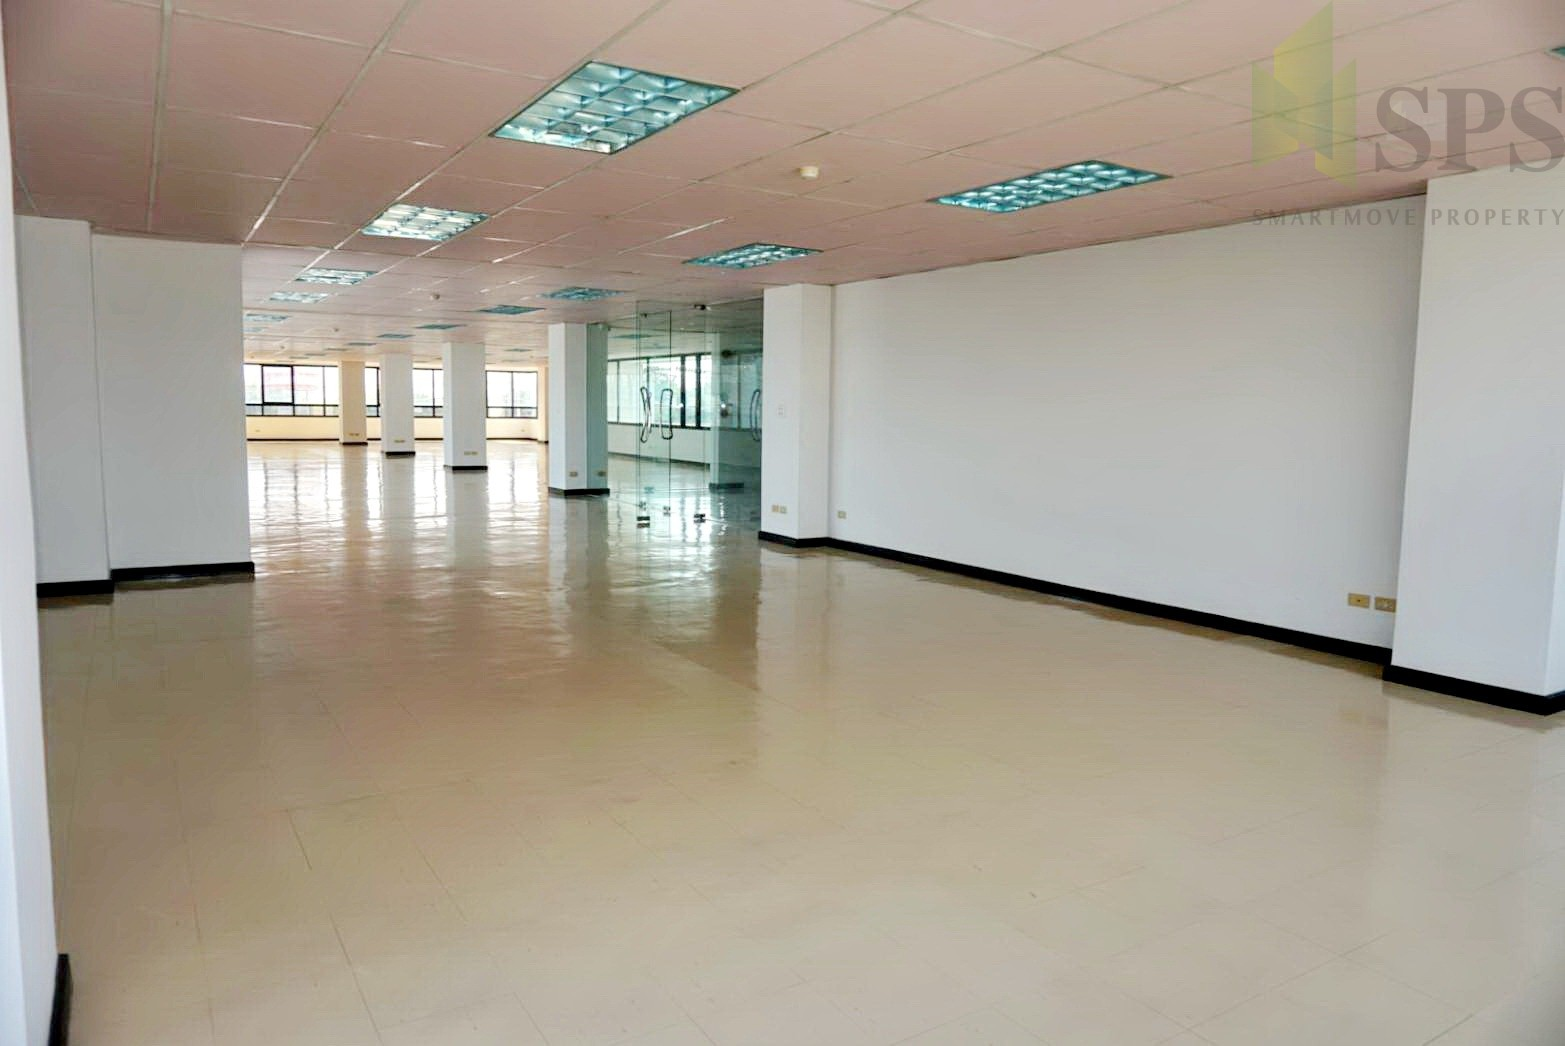 Office Space Building at Kumthorn Building Rama 3 for RENT พระราม 3 พื้นที่สำนักงานให้เช่า (SPSCS050)